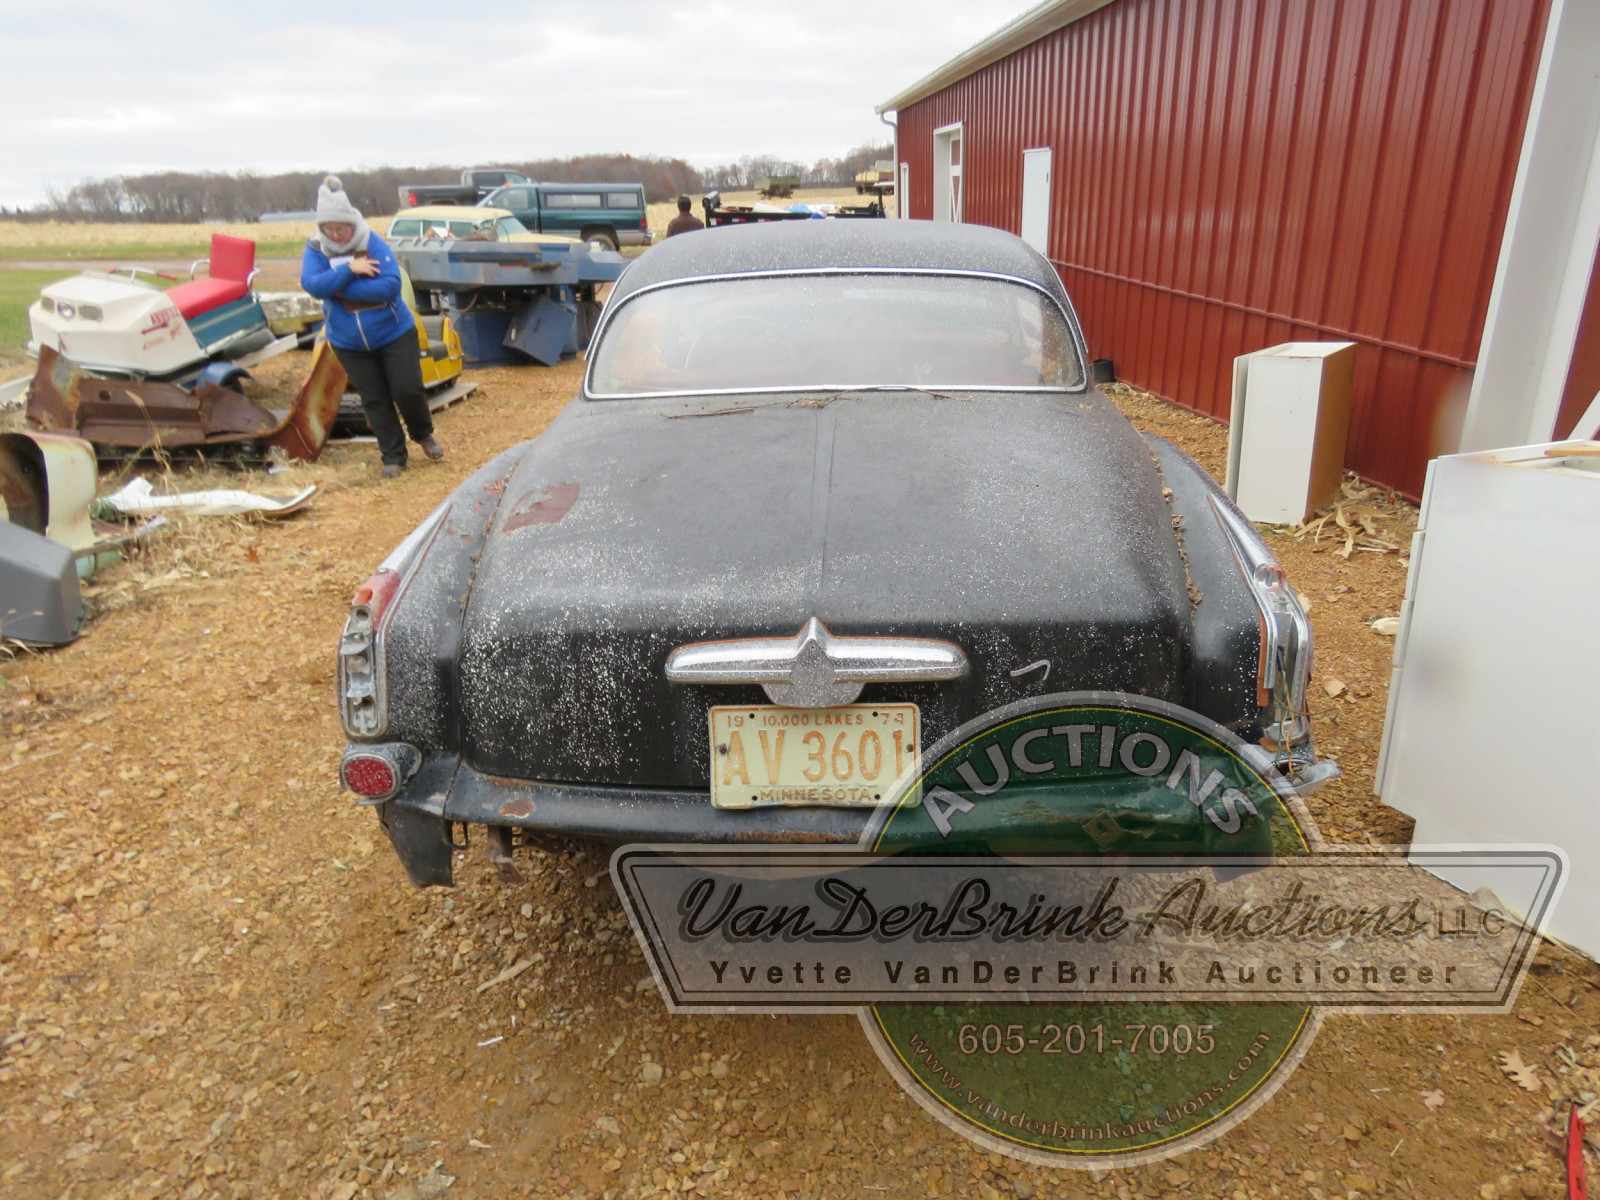 Borgward Coupe for project or parts - Image 8